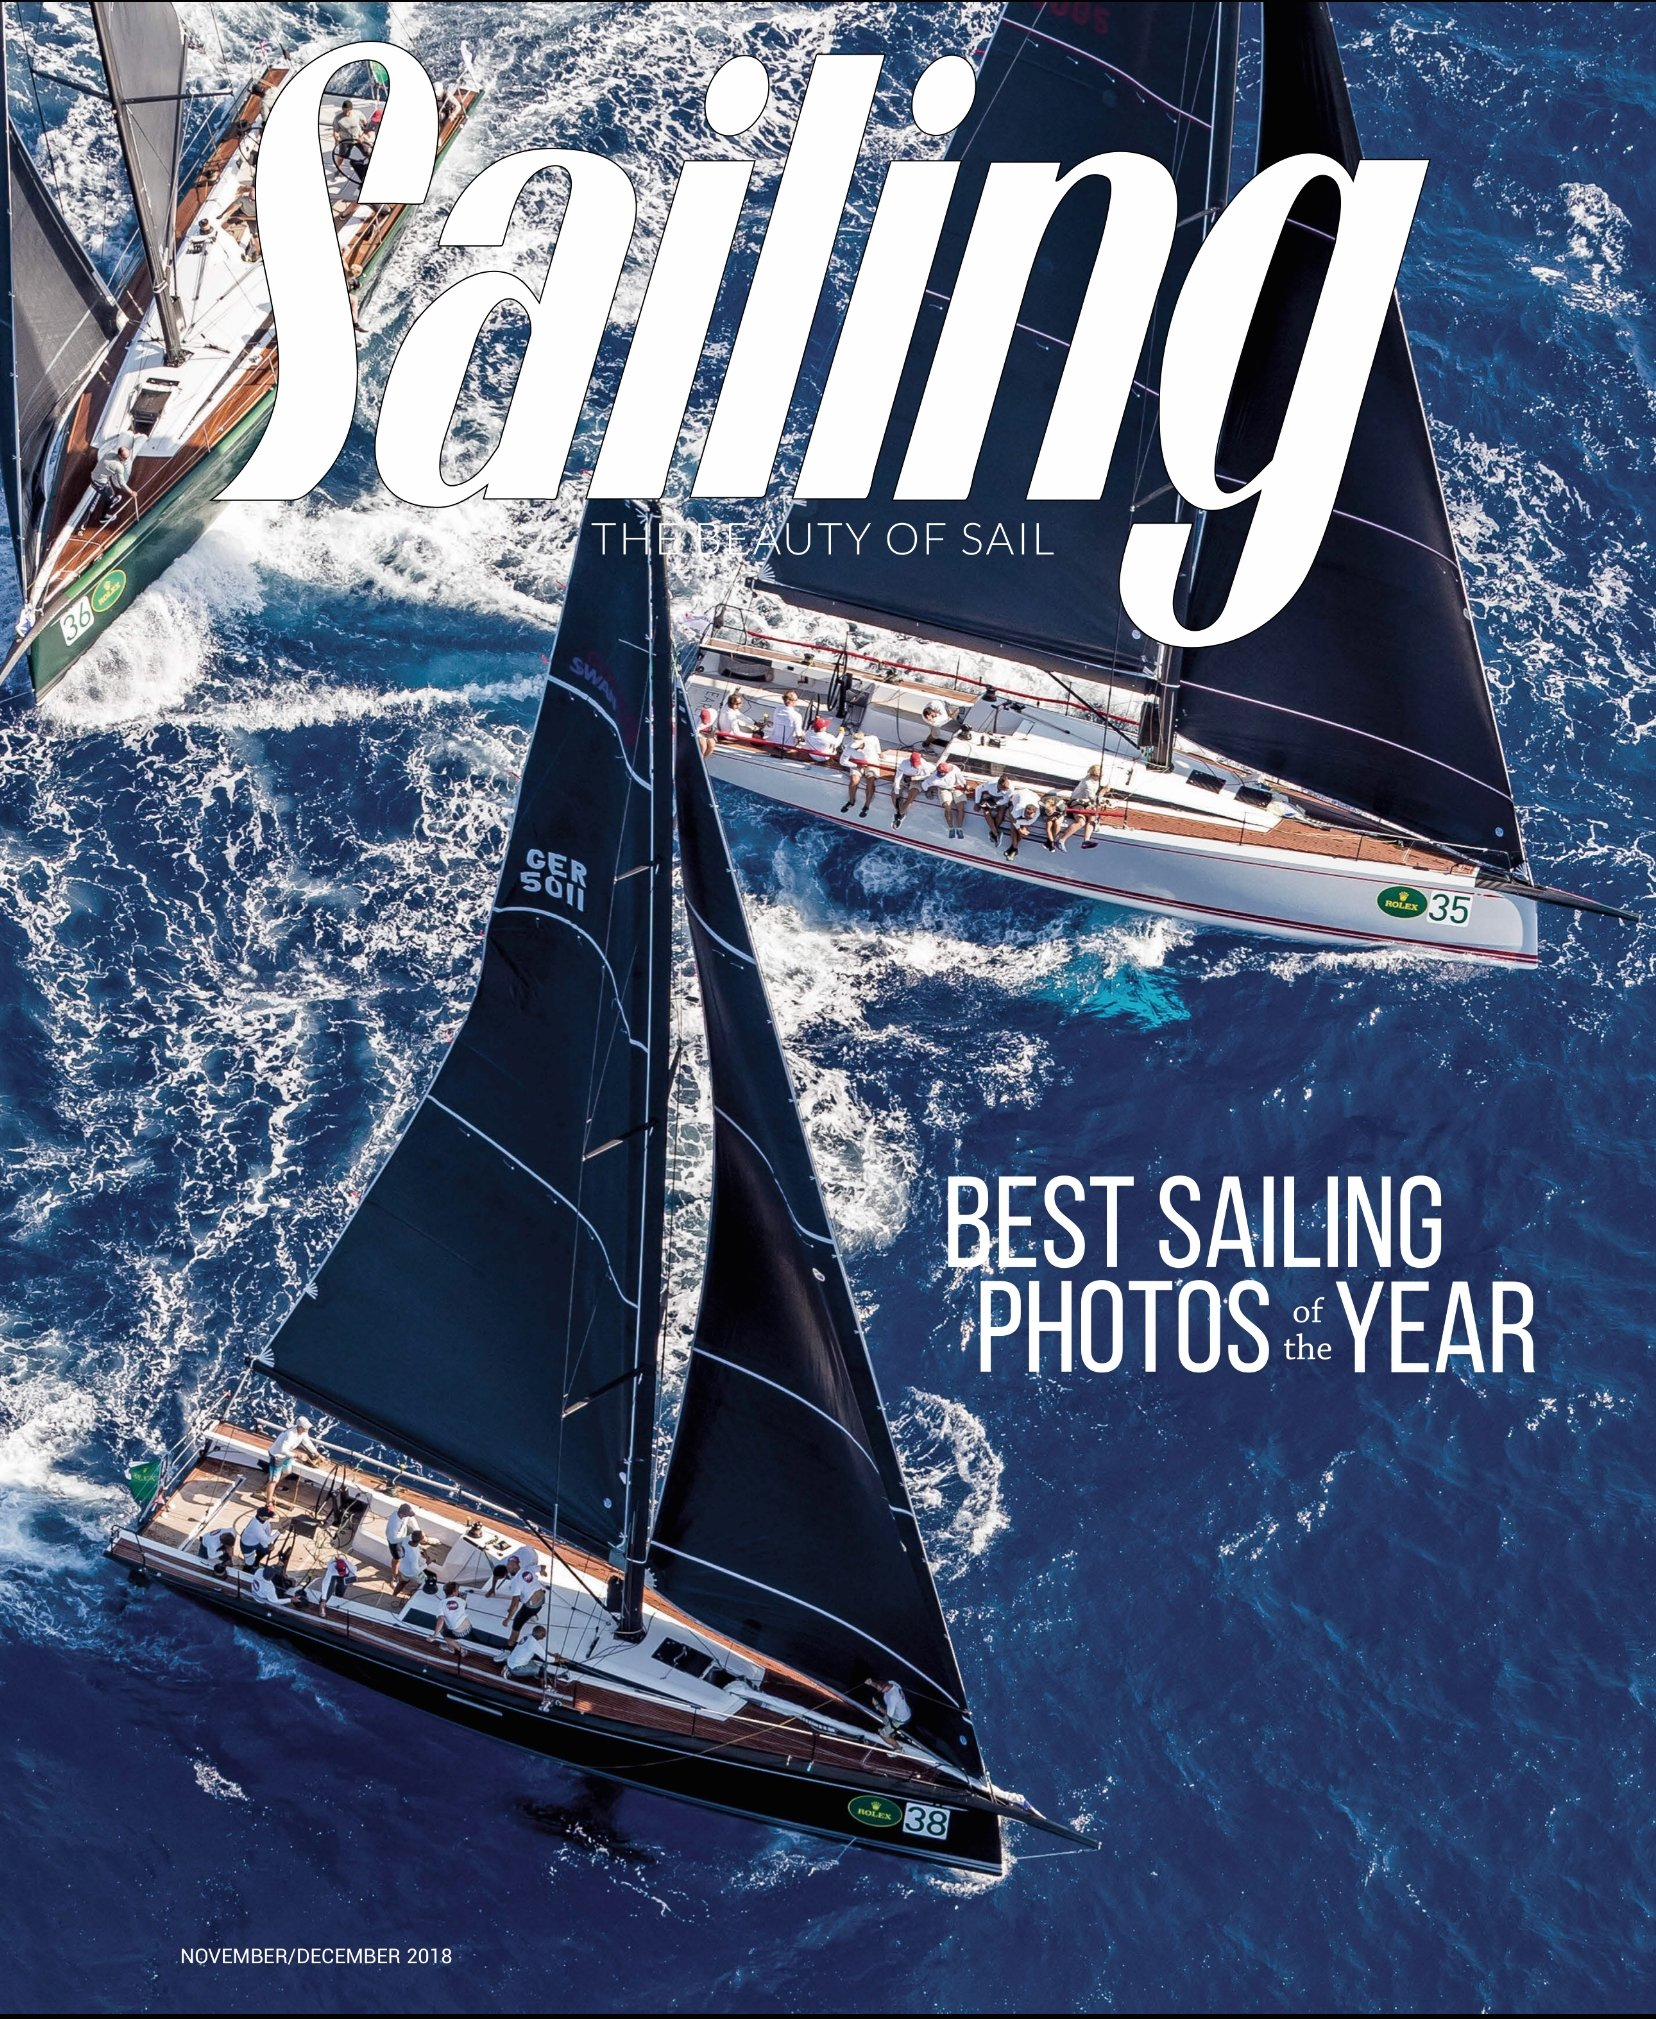 Sailing - November/December 2018 Perry design review of the Hylas 48